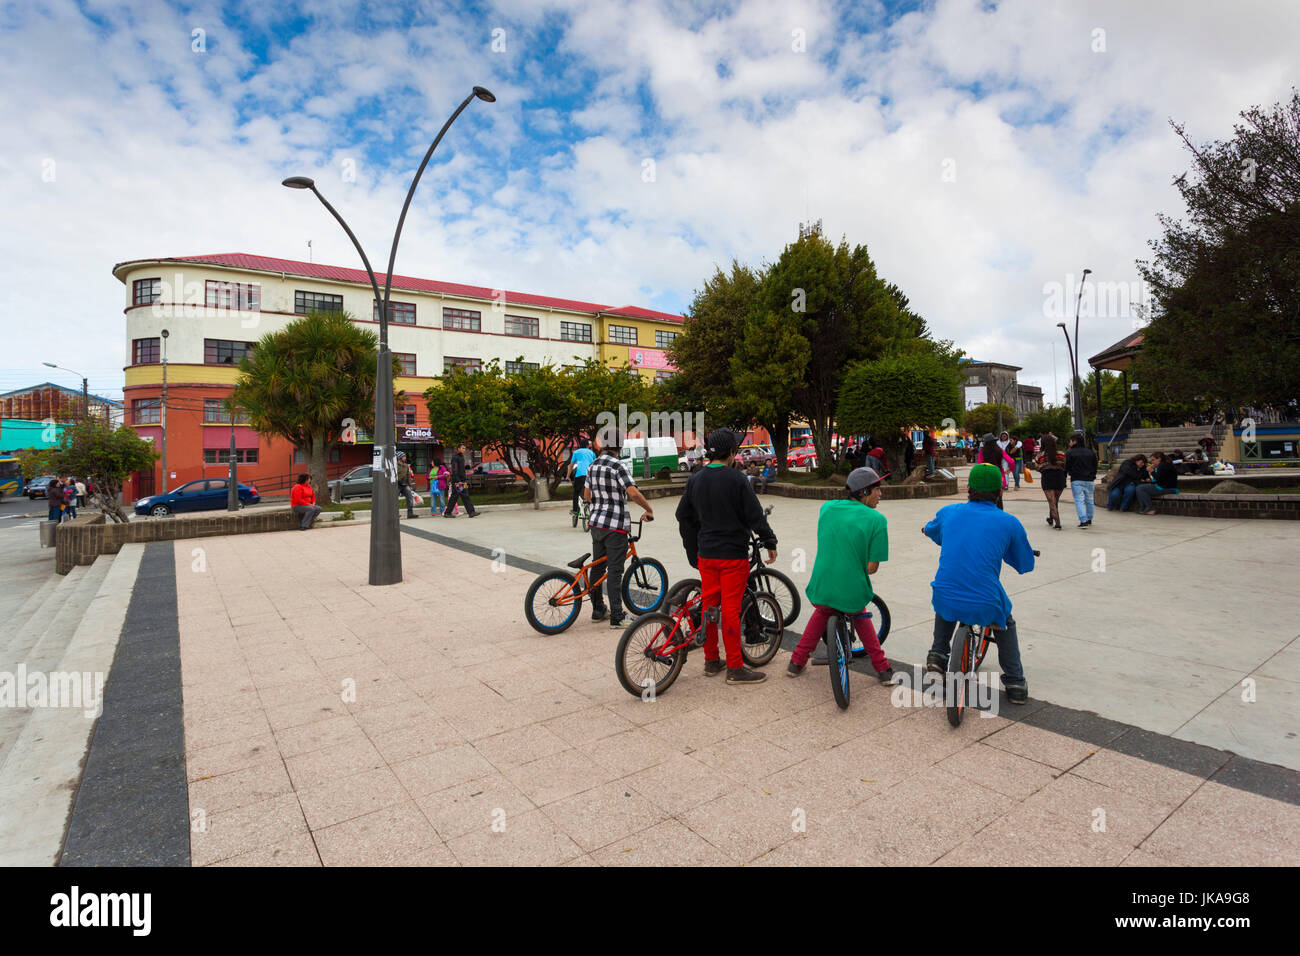 Chile, Chiloe Island, Ancud, bicyclists, town plaza - Stock Image